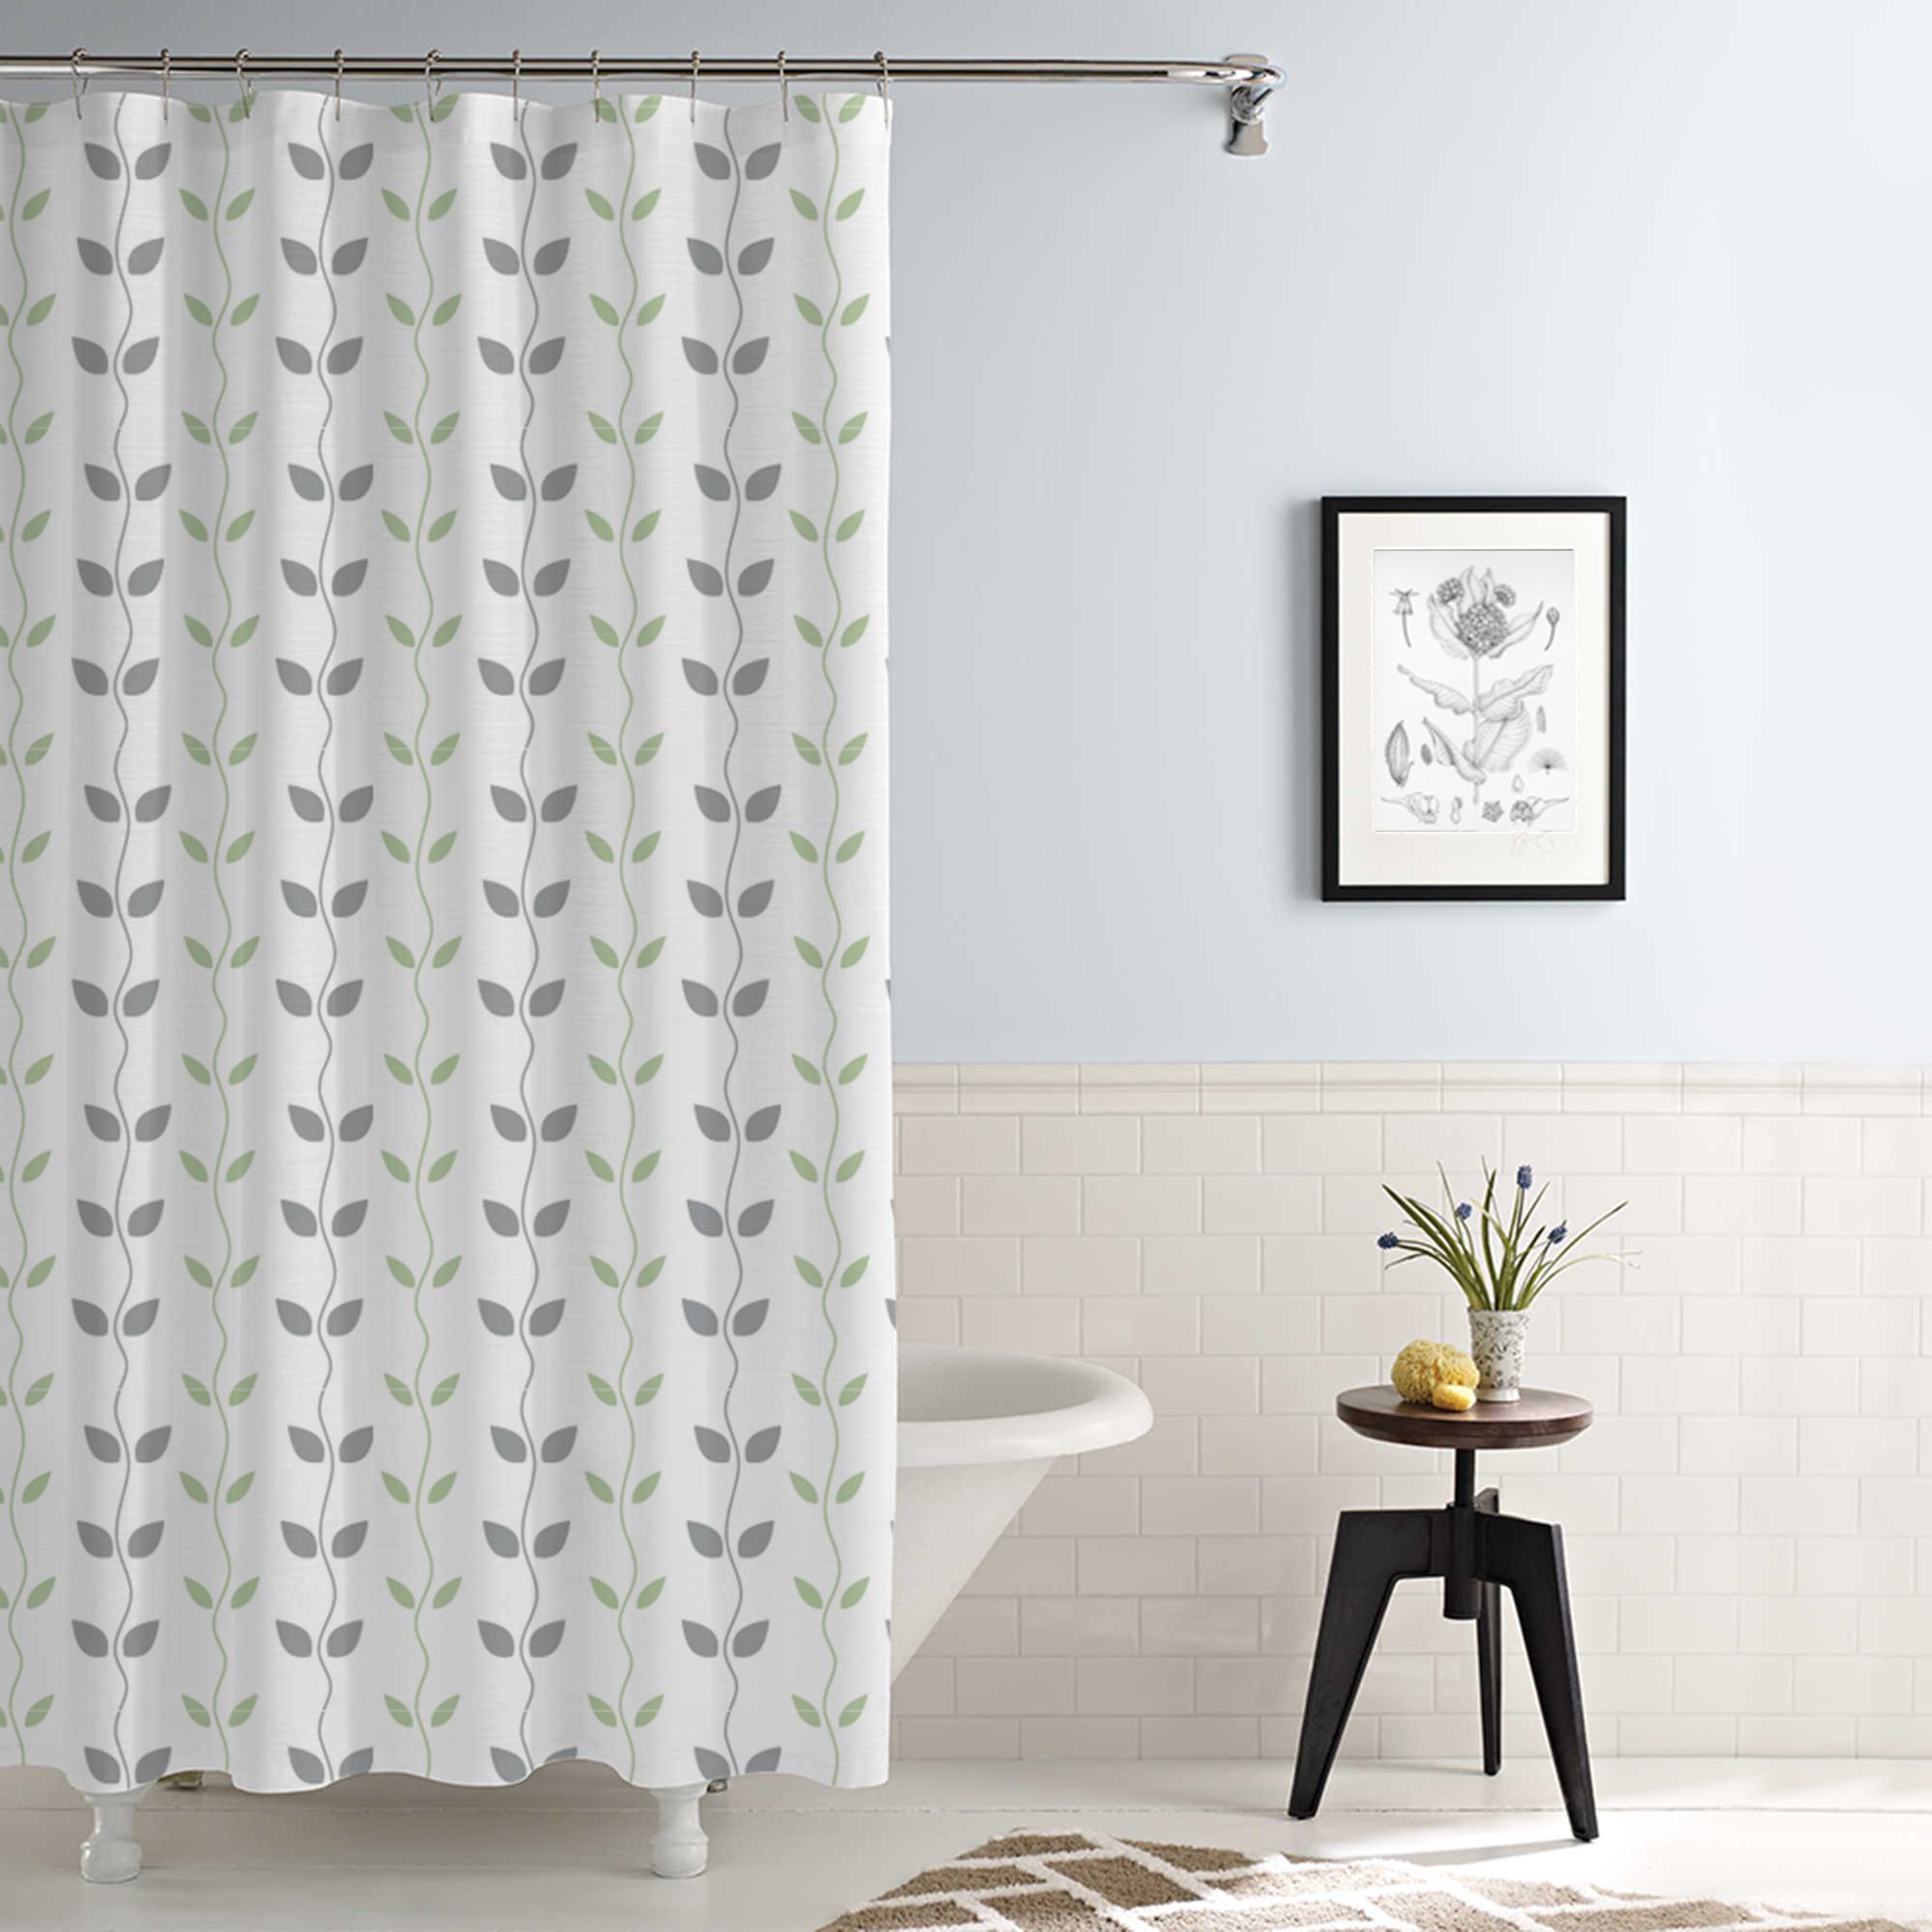 Waterproof Printed Shower Curtain Organic Vines Grey Aqua